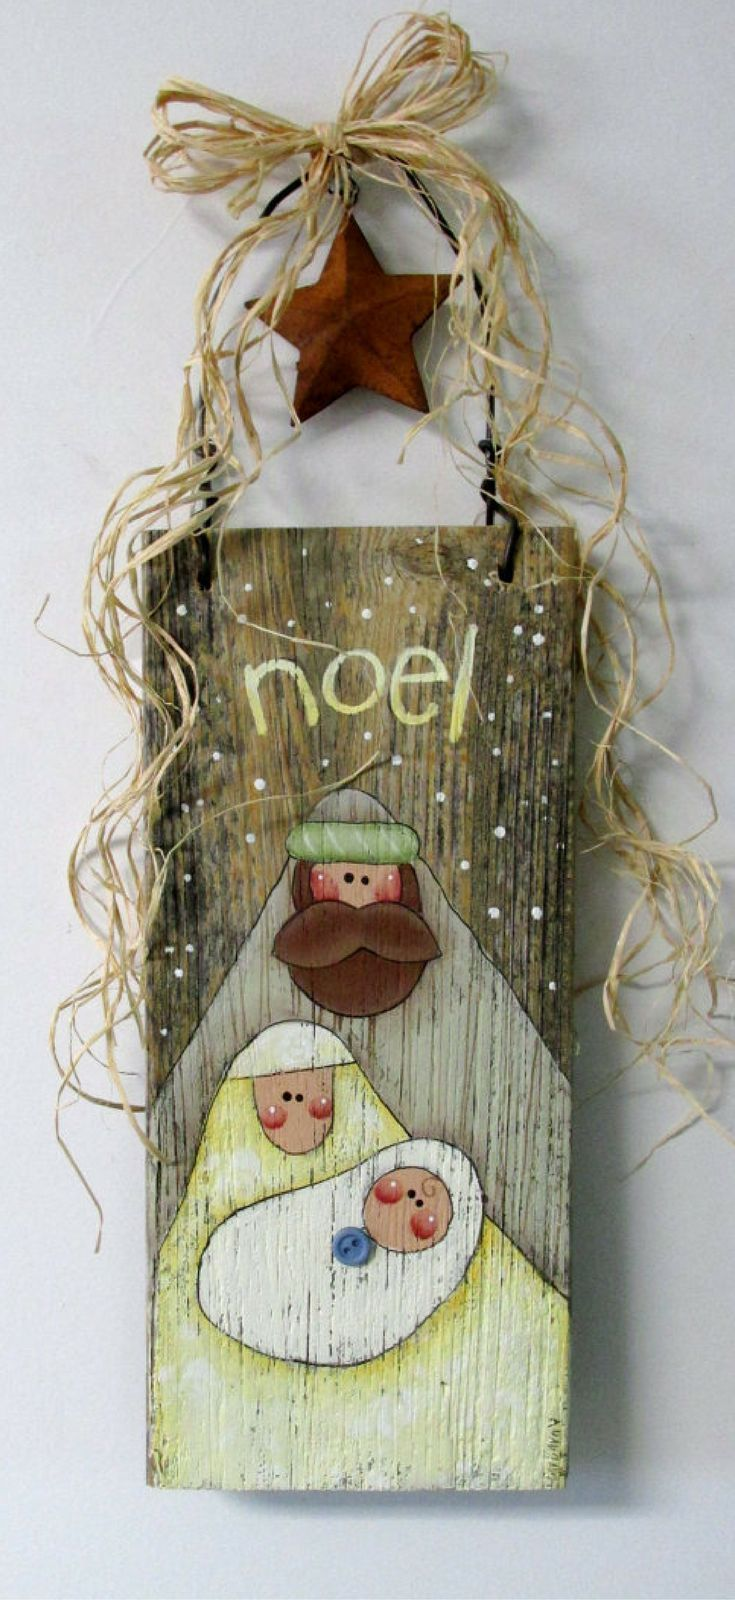 Hand Painted Nativity Scene on Barn Wood, Folk Art Nativity, Rustic Nativity, Rustic Christmas sign, Reclaimed Wood, Noel Sign, Christmas Sign, Mary, Joseph, and Baby Jesus, Christmas decor #ad